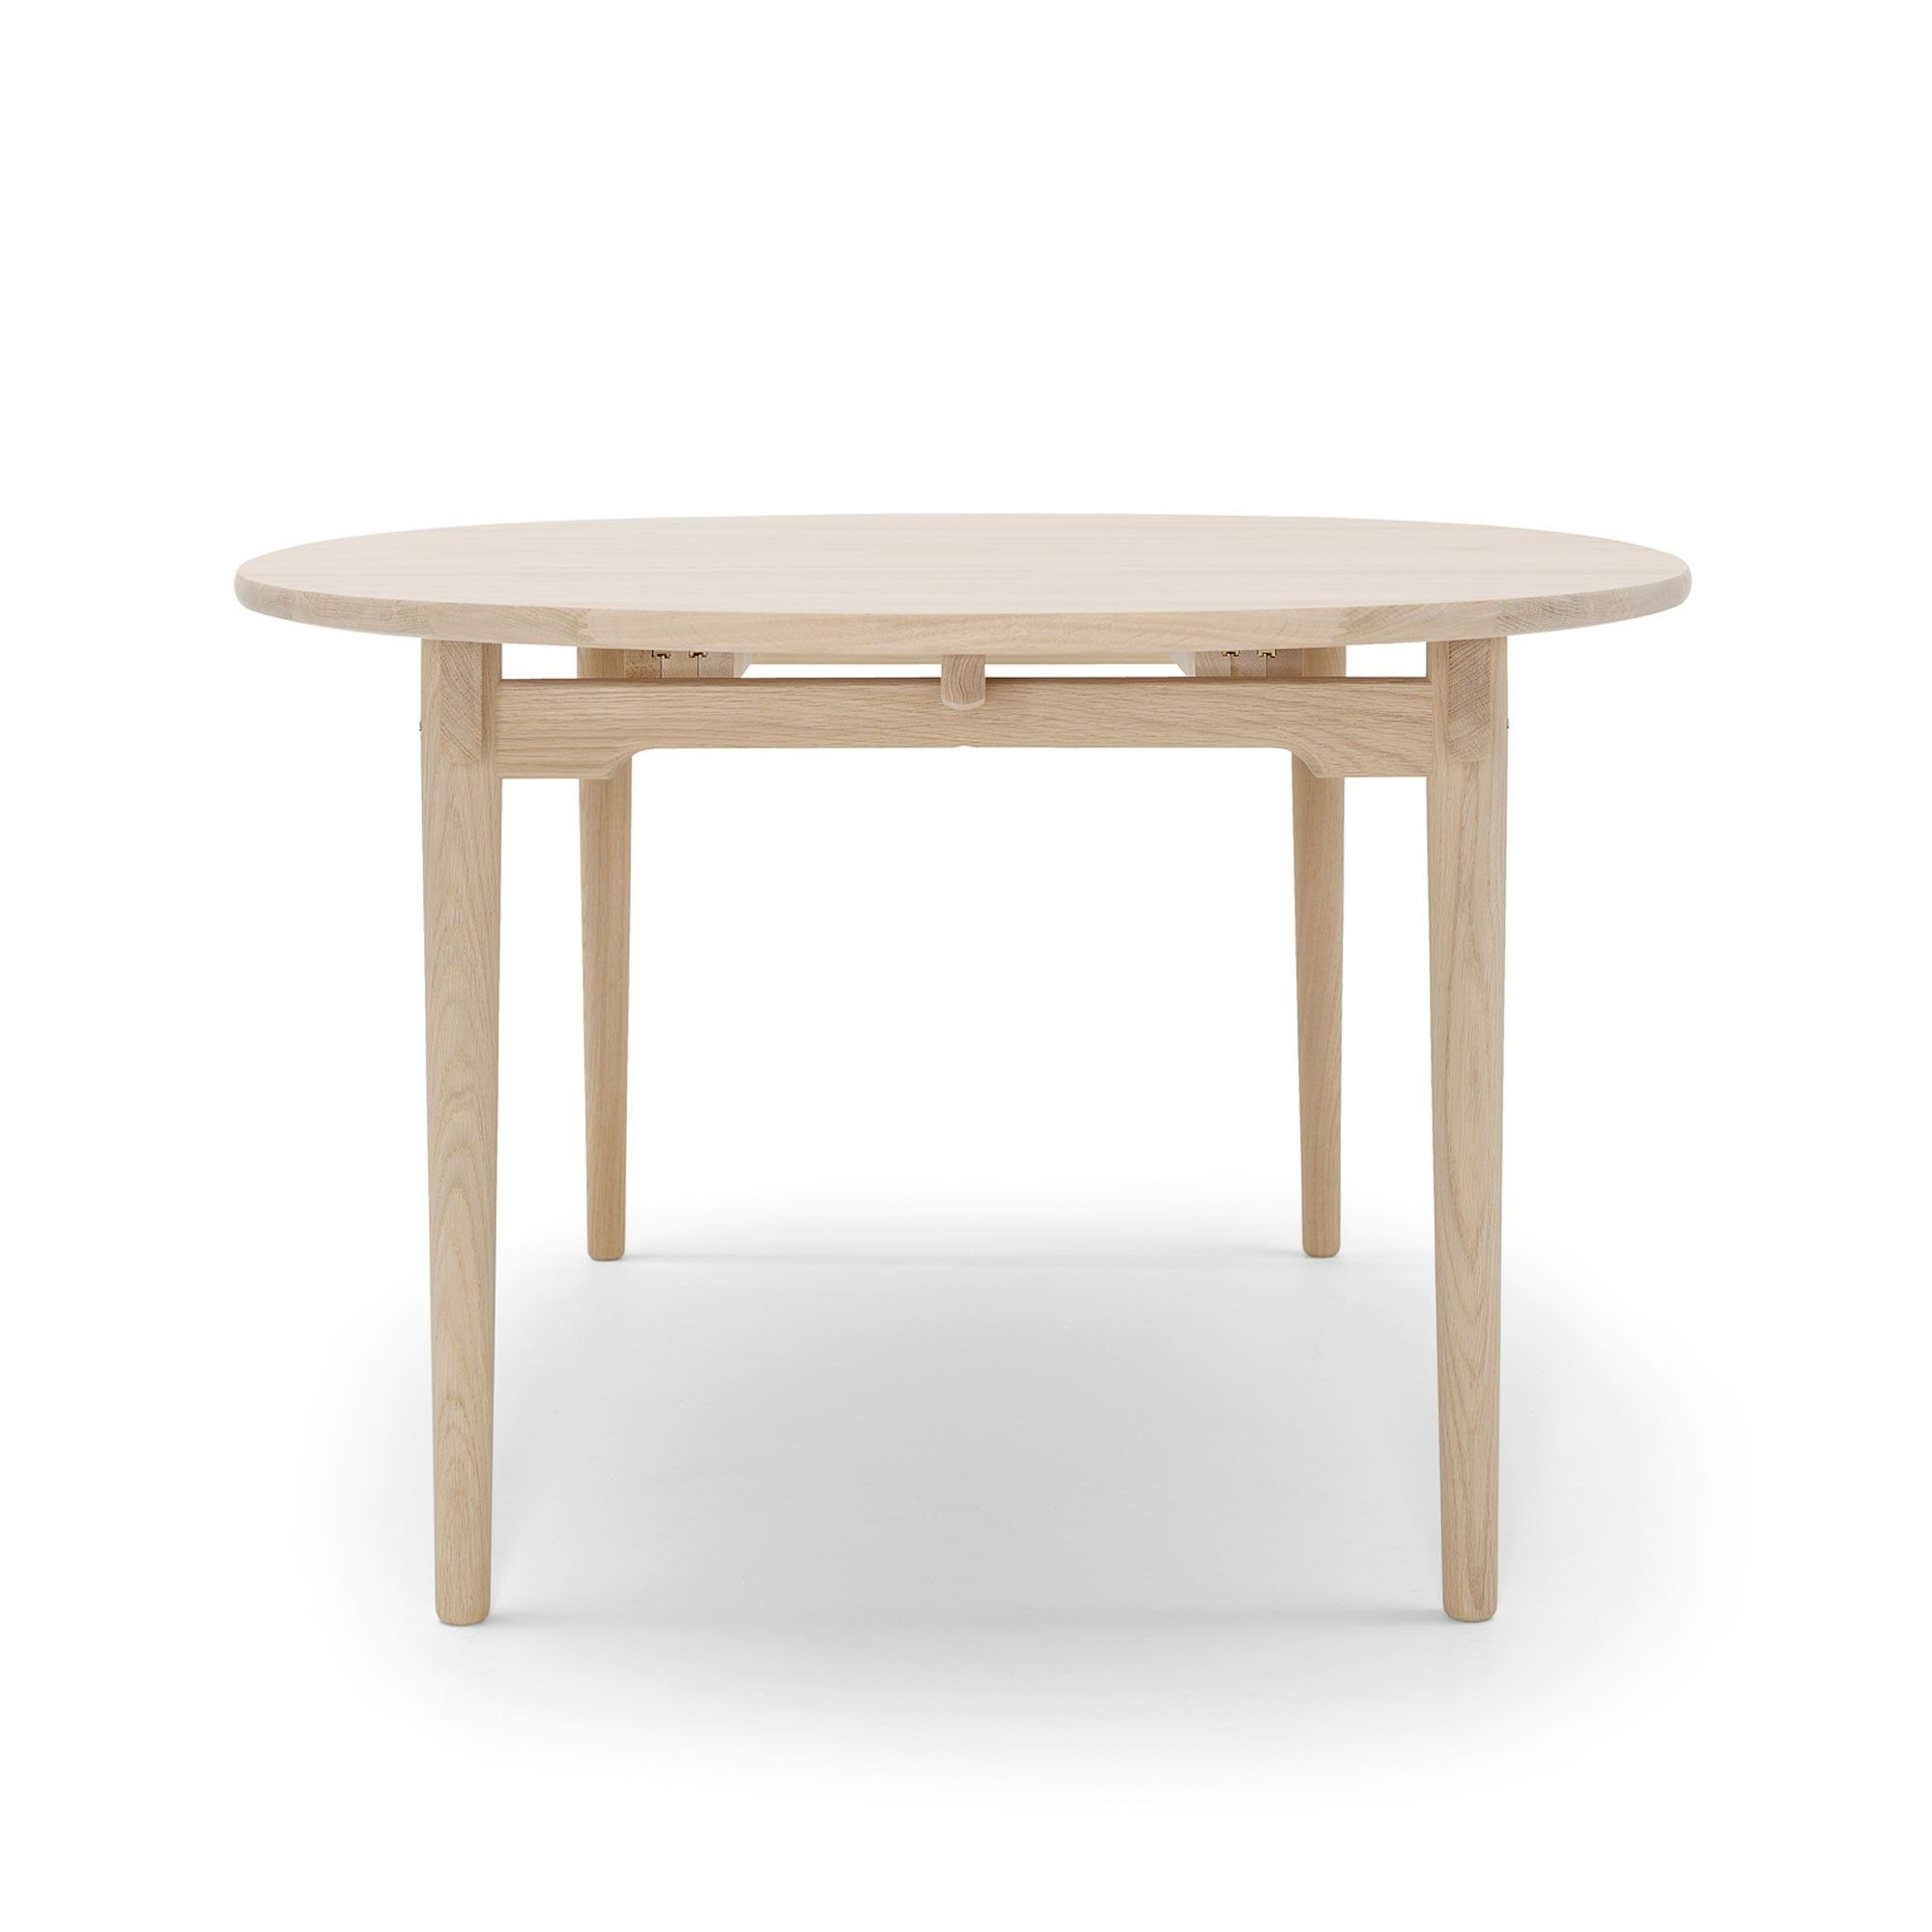 The Elliptical Tabletop And Legs Are Made From Solid Wood. With Its Many  Possible Combinations, This Is An Ideal Table For Everyday Use ...